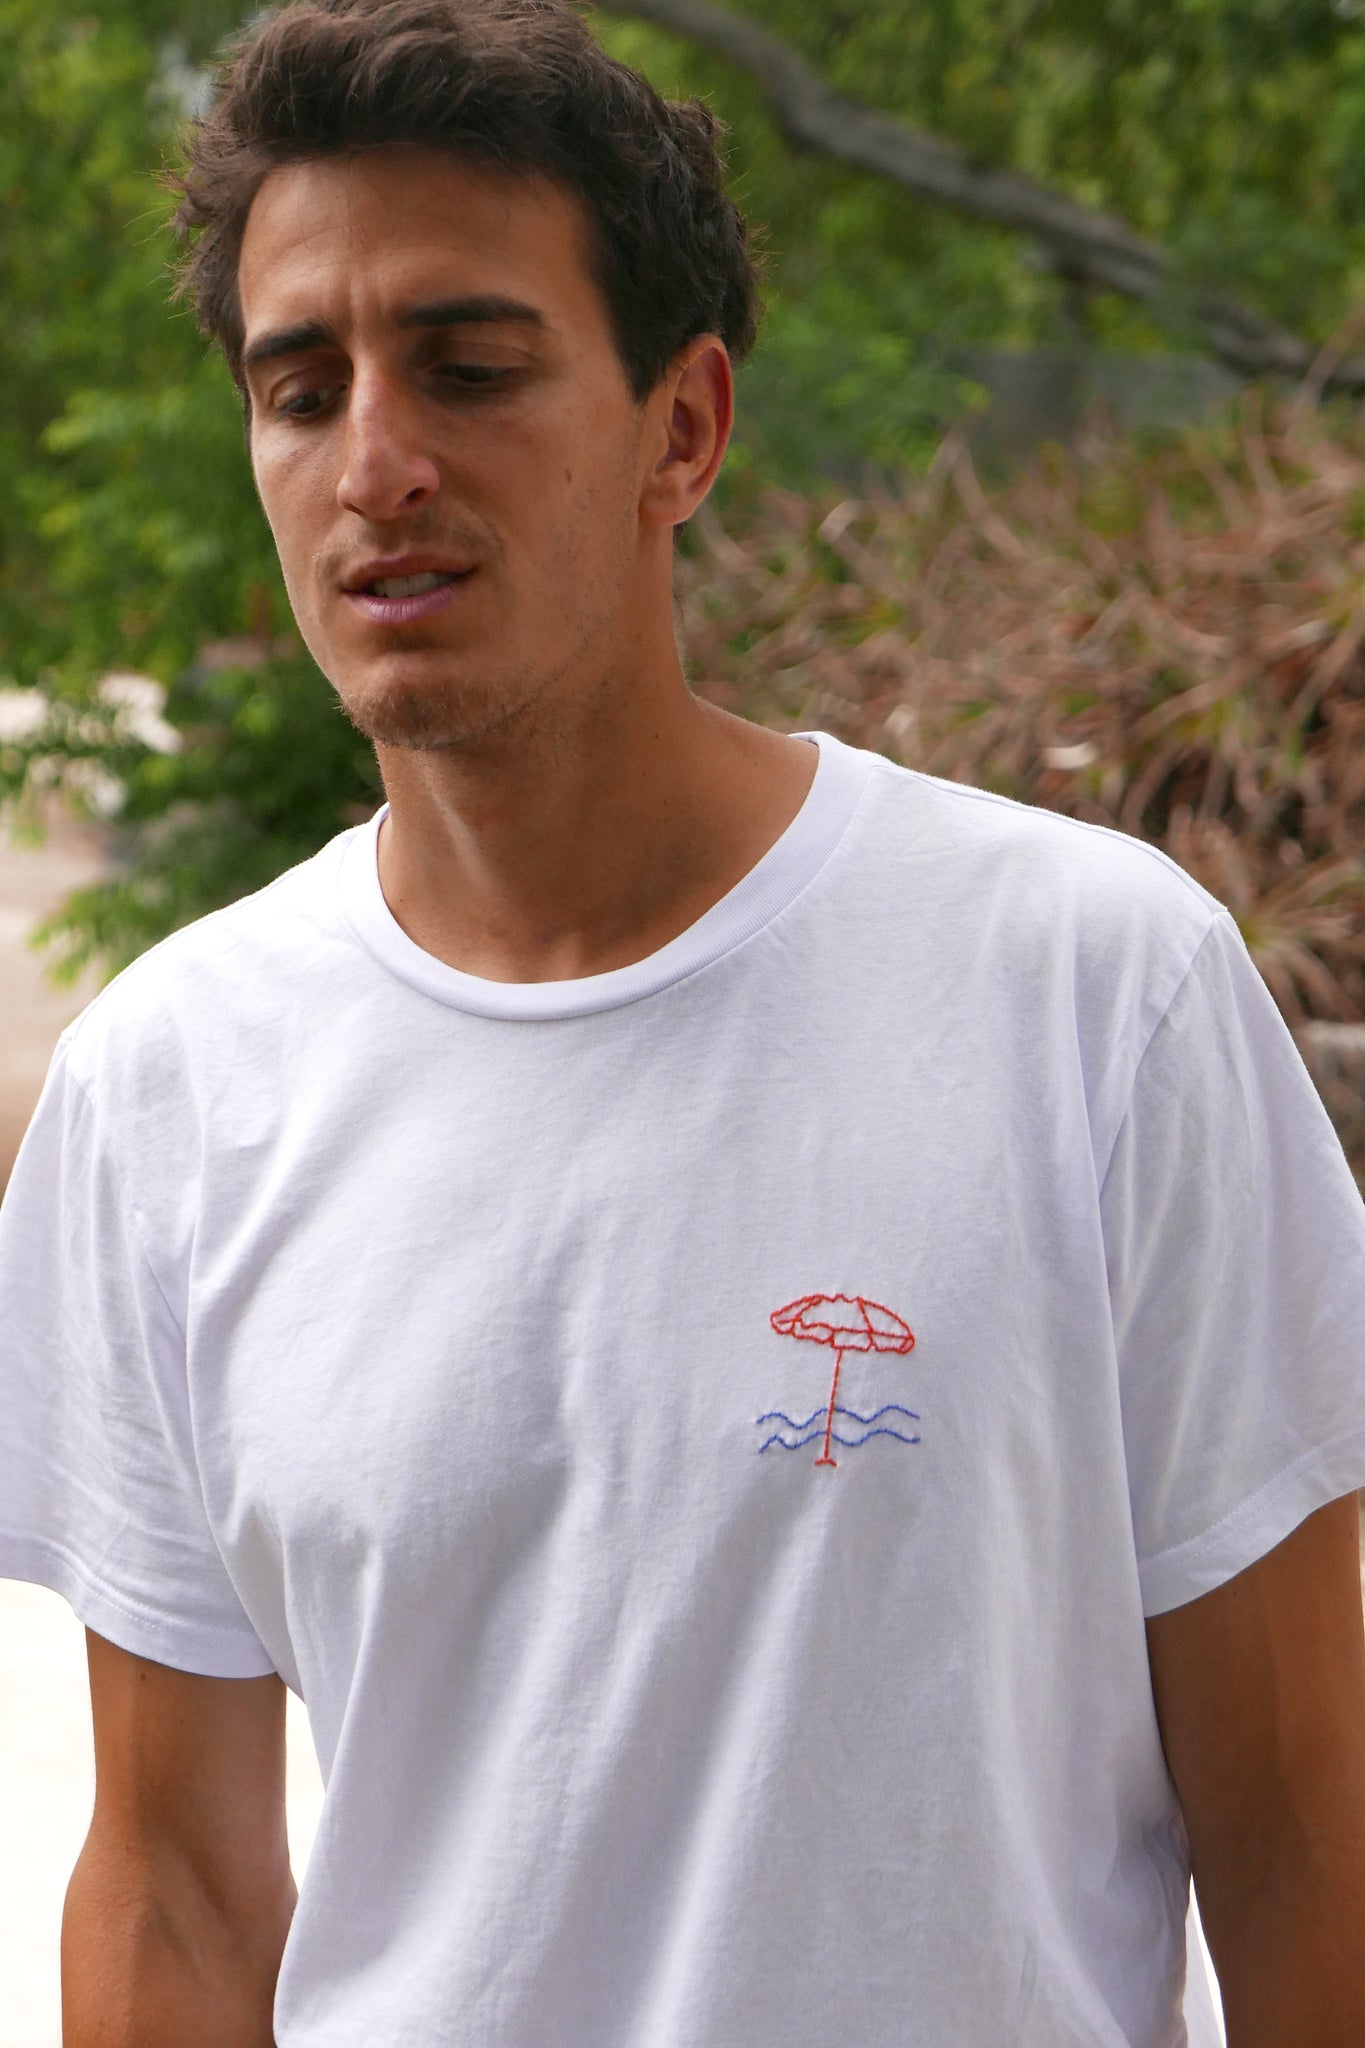 Embroidered t-shirt - Umbrella